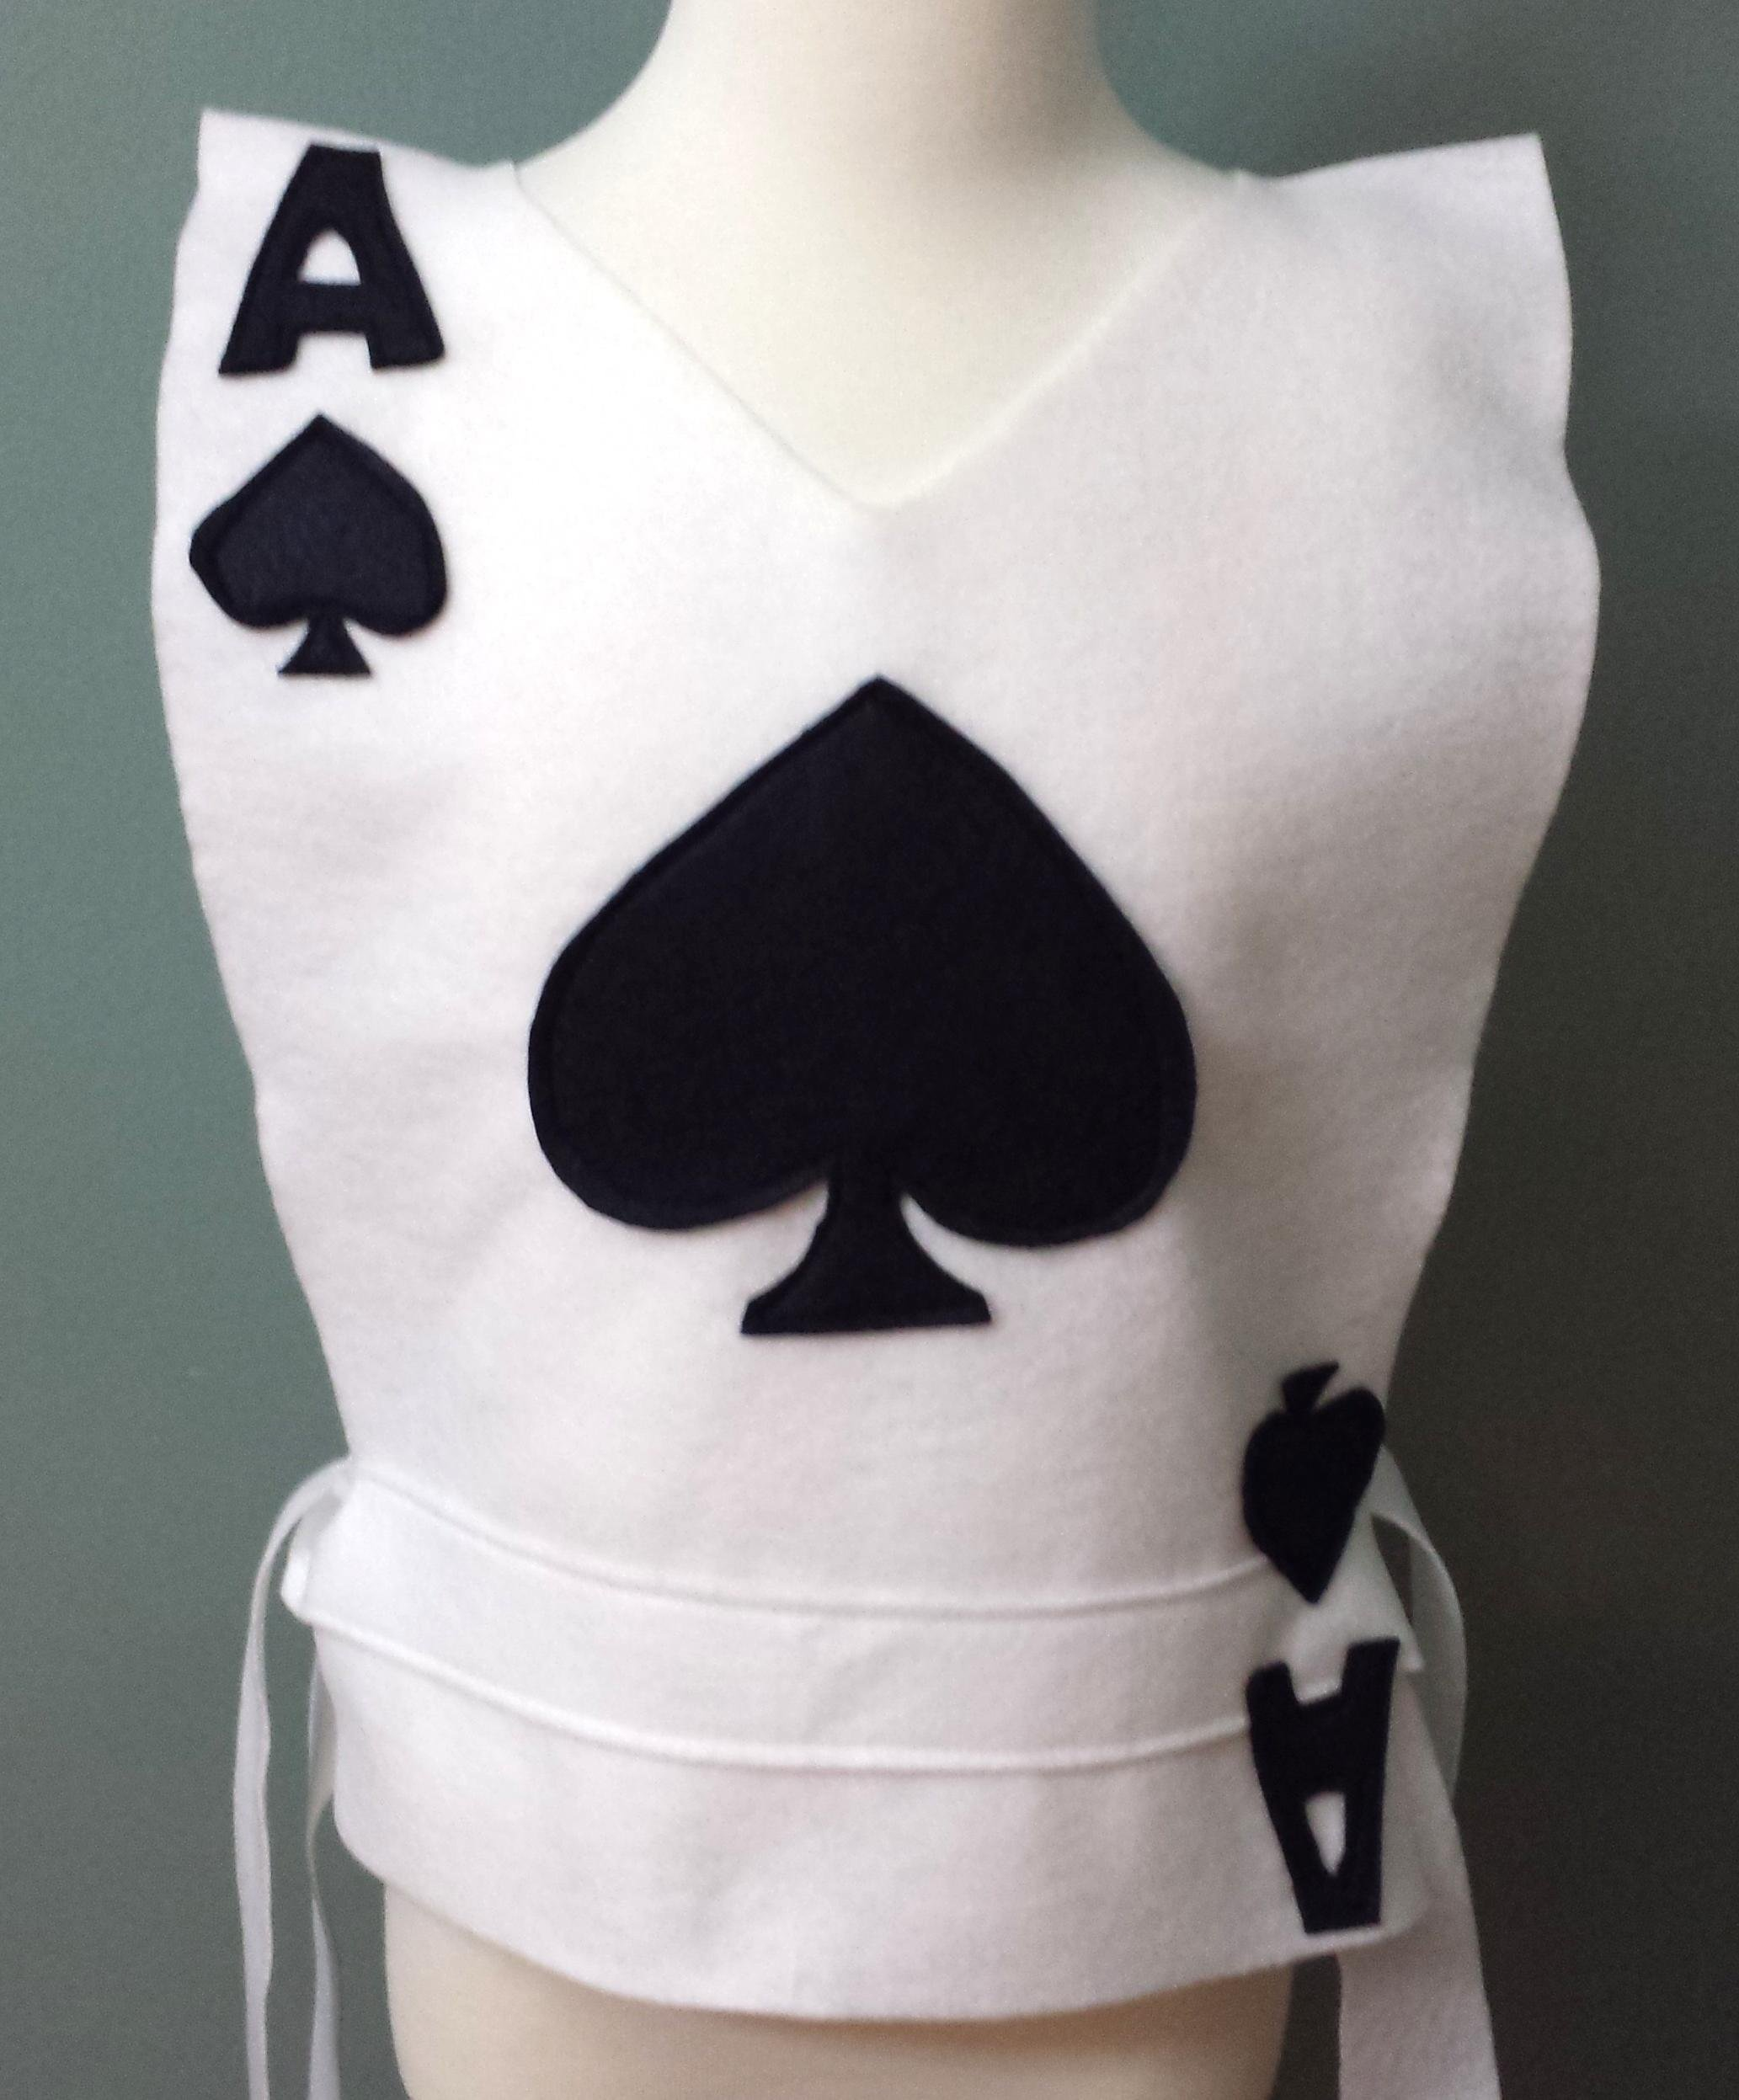 Kids Spades Playing Card Costume Tunic - Choose your Card (Alice in Wonderland) - Baby/Toddler/Kids/Teen/Adult Sizes